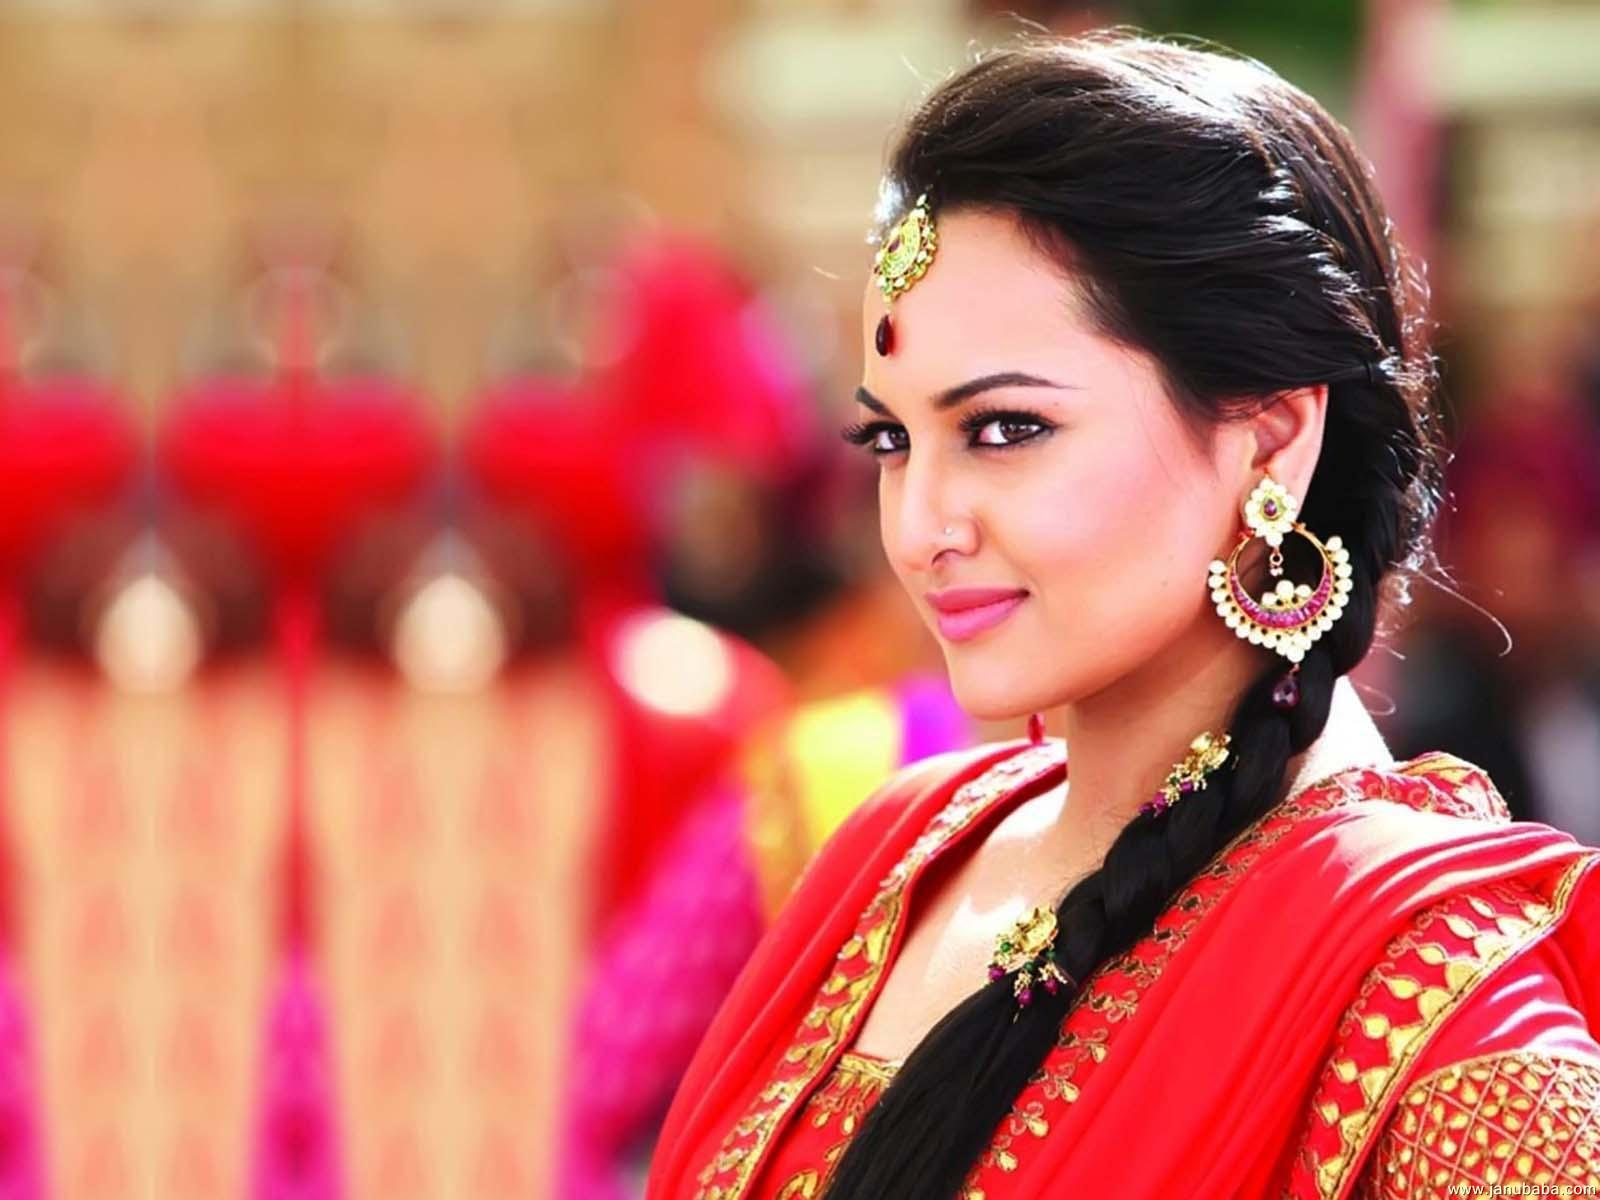 sonakshi-sinha-from-movie-dabang